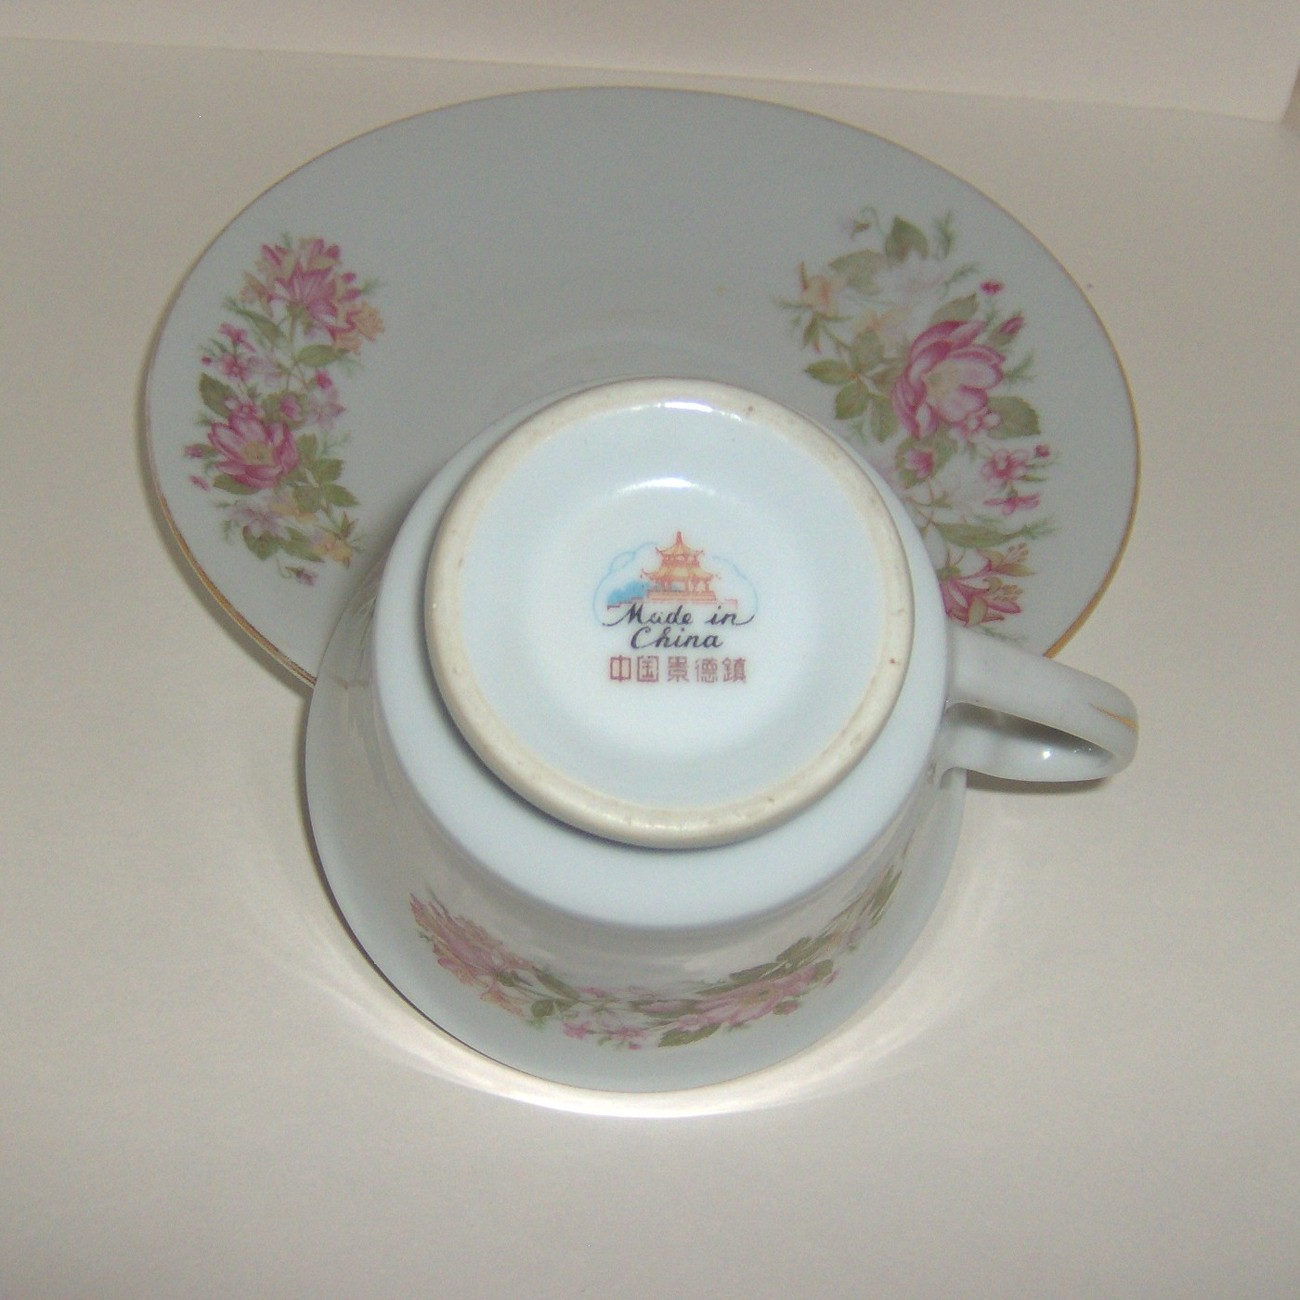 China Teacup and Saucer Set with Delicate Pink Flowers